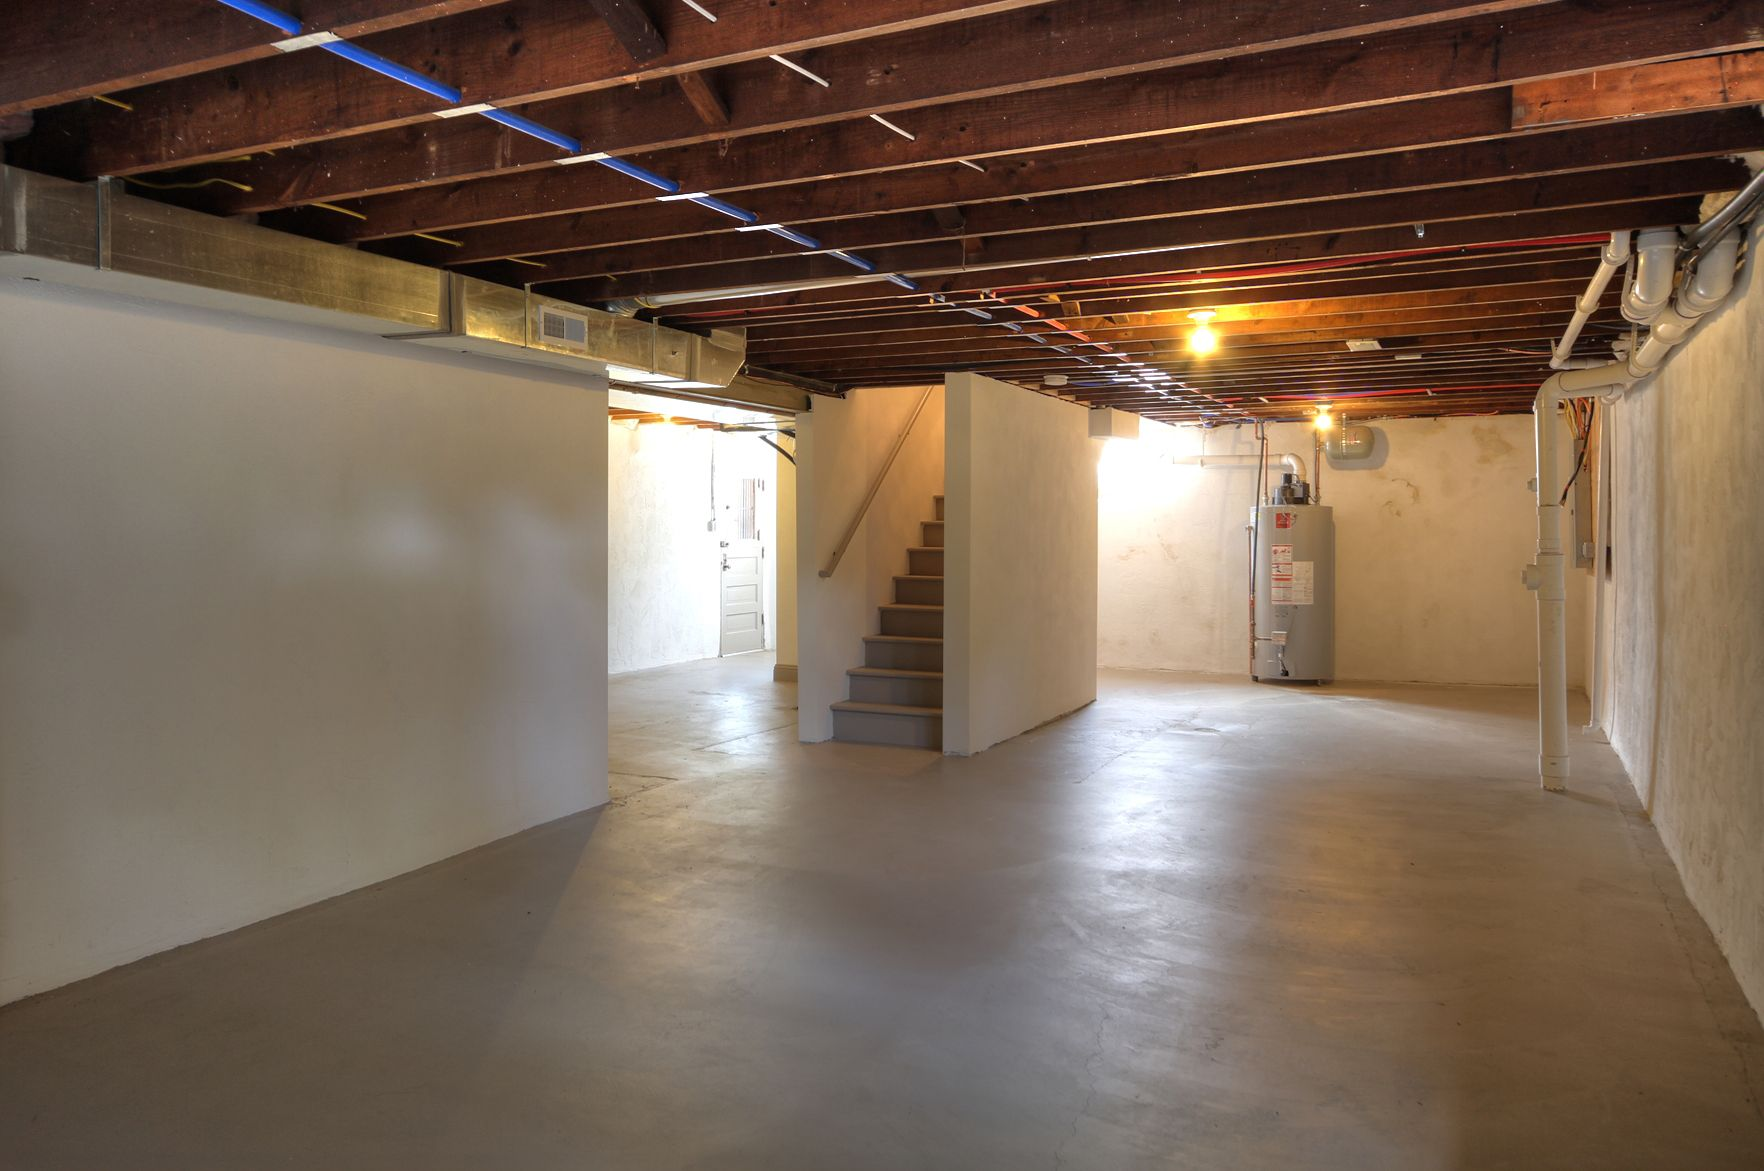 unfinished basement 29 rio vista 63124 pinterest basements small playroom and exposed beams. Black Bedroom Furniture Sets. Home Design Ideas